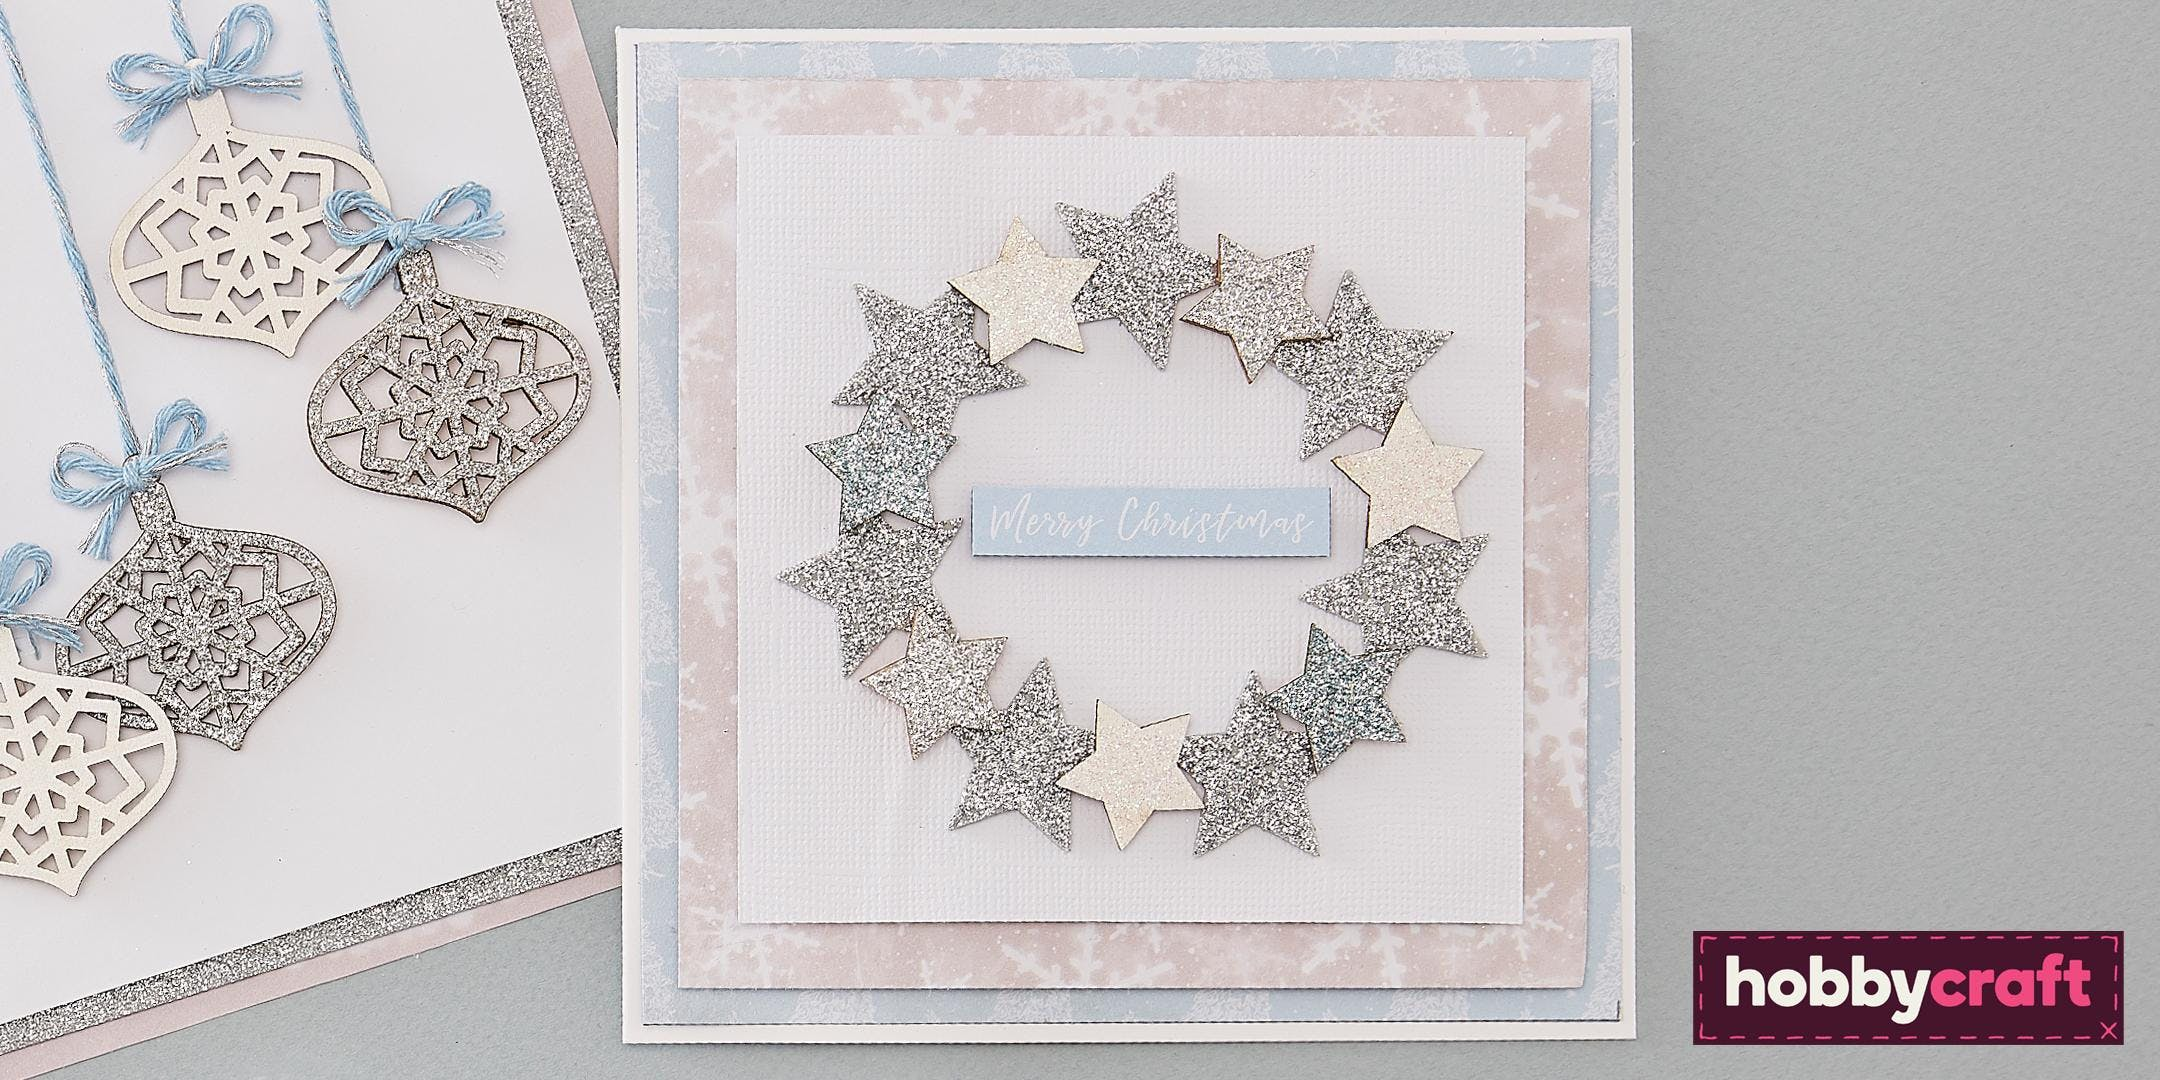 Christmas Papercraft Live: Card Making with Frozen Wishes - 15 JUN 2018